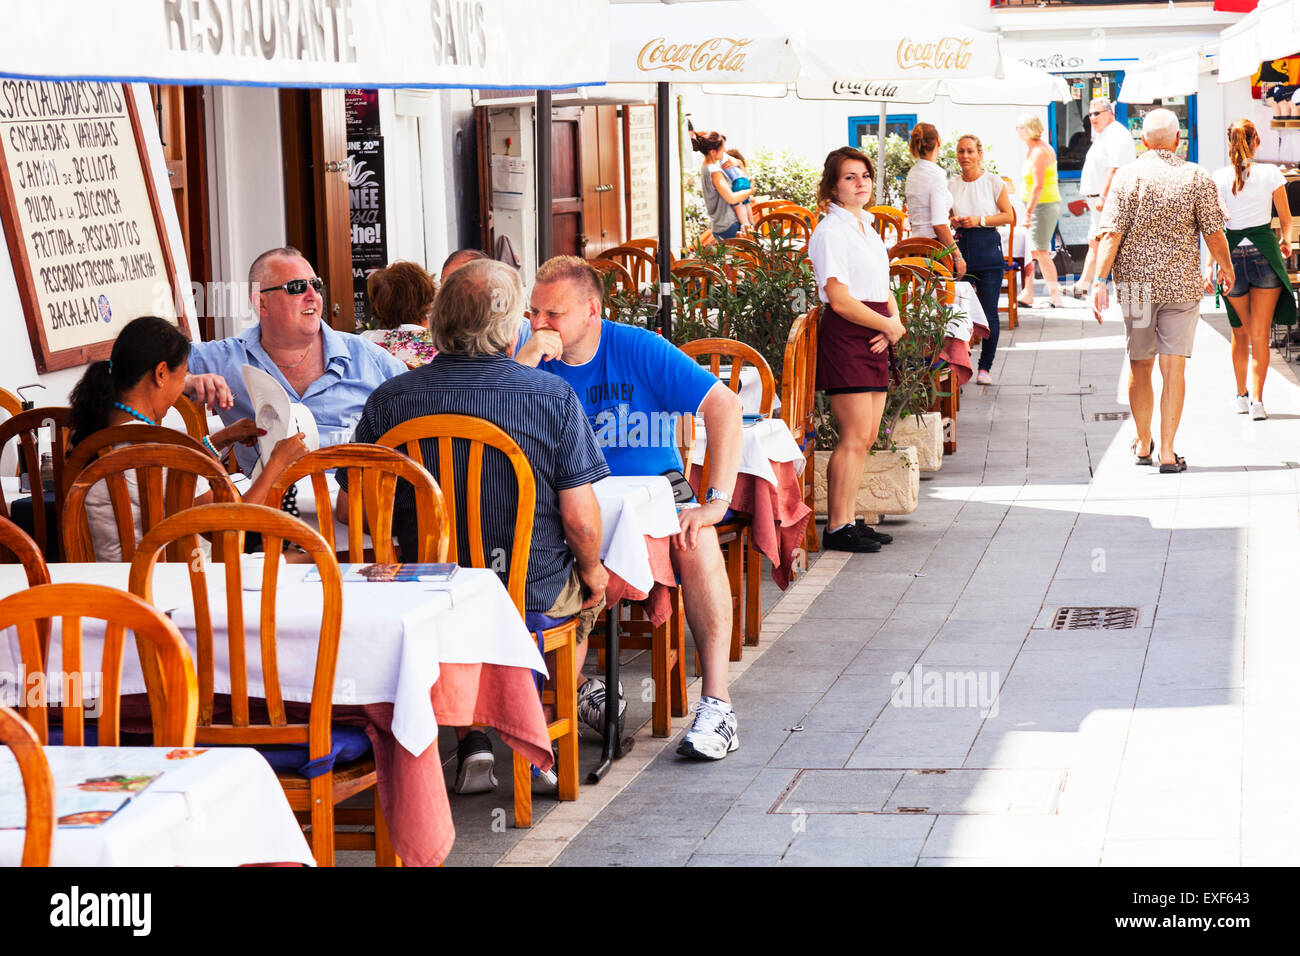 Dining eating out in Ibiza town restaurant café diner tapas Spanish eateries diners al fresco outside on street - Stock Image